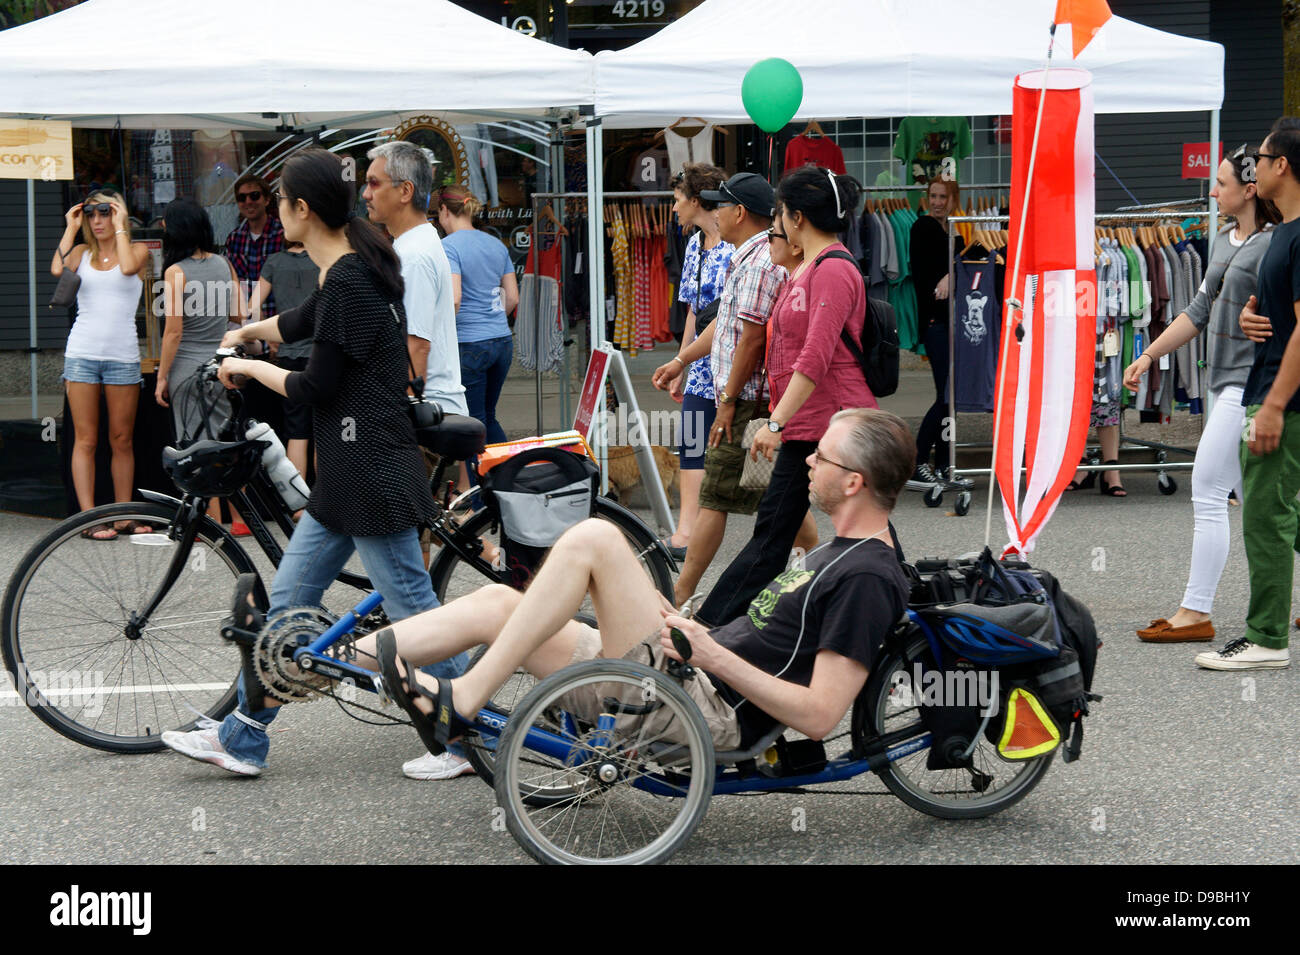 Man riding a reclining bicycle at the Car Free Day festival on Main Street in Vancouver, British Columbia Stock Photo